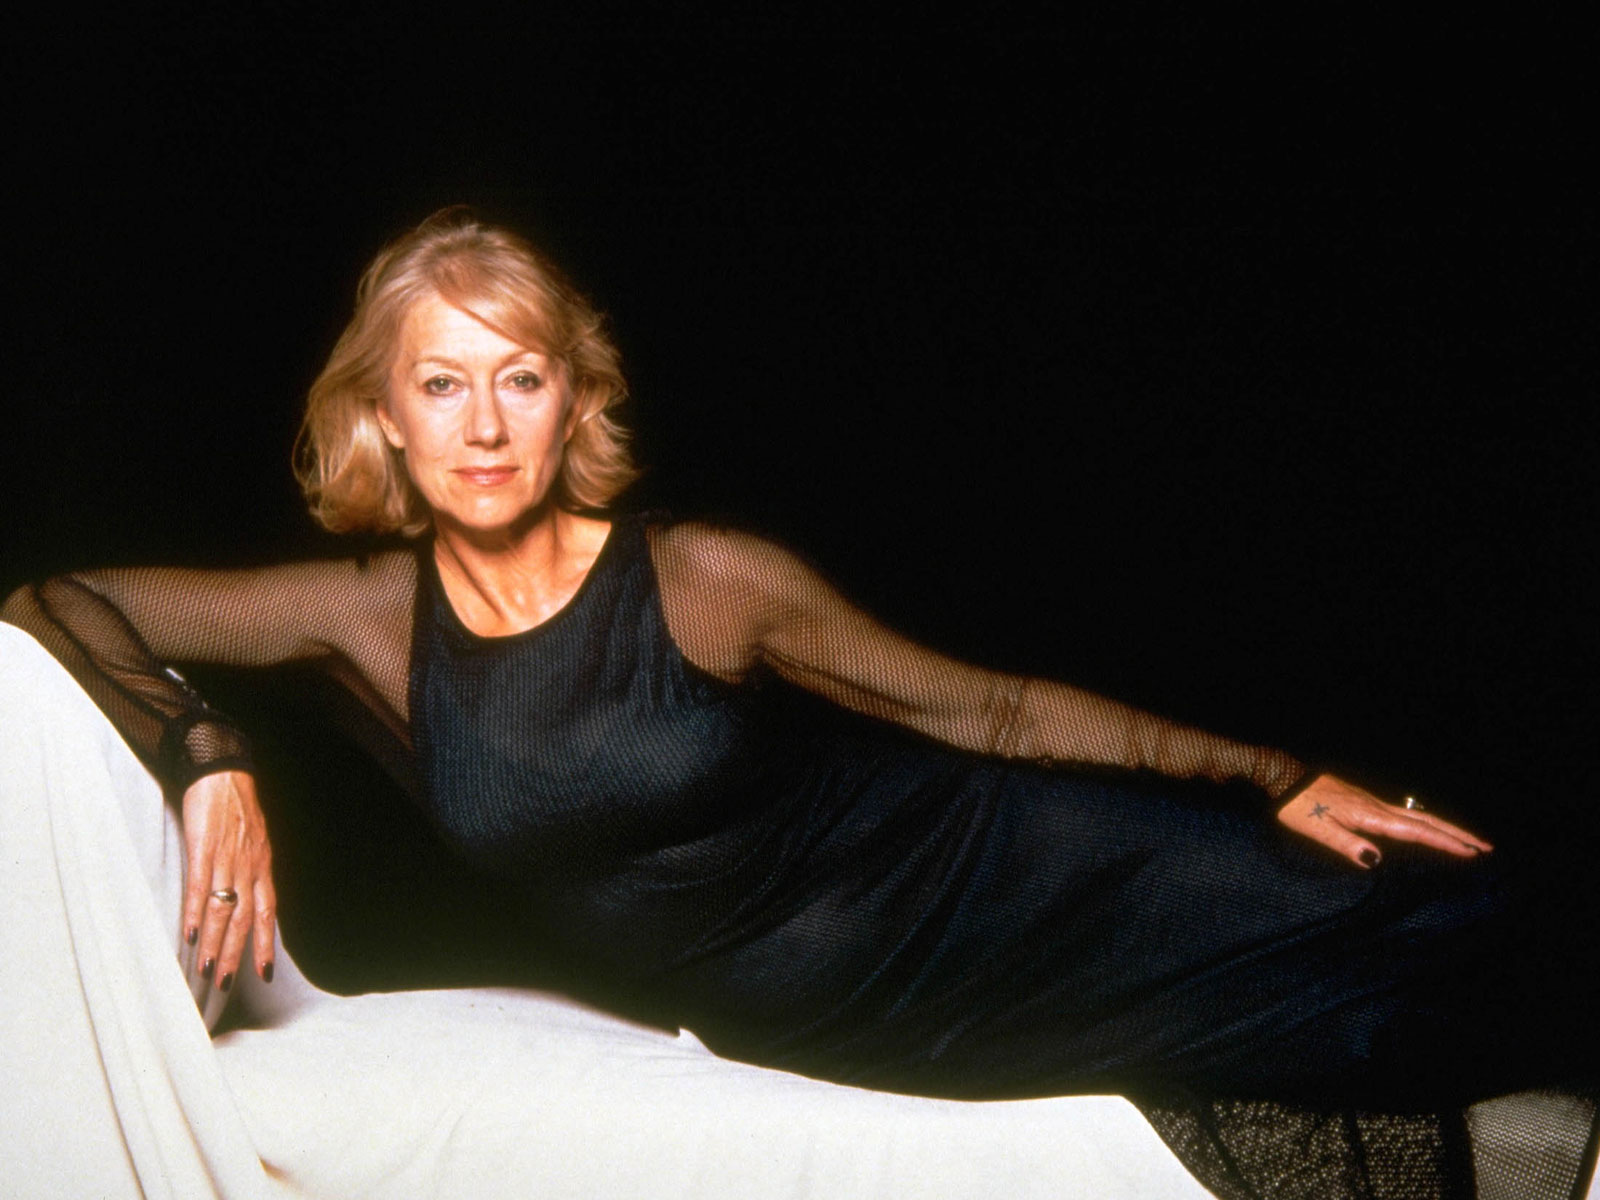 Helen Mirren Widescreen 6 Thumb